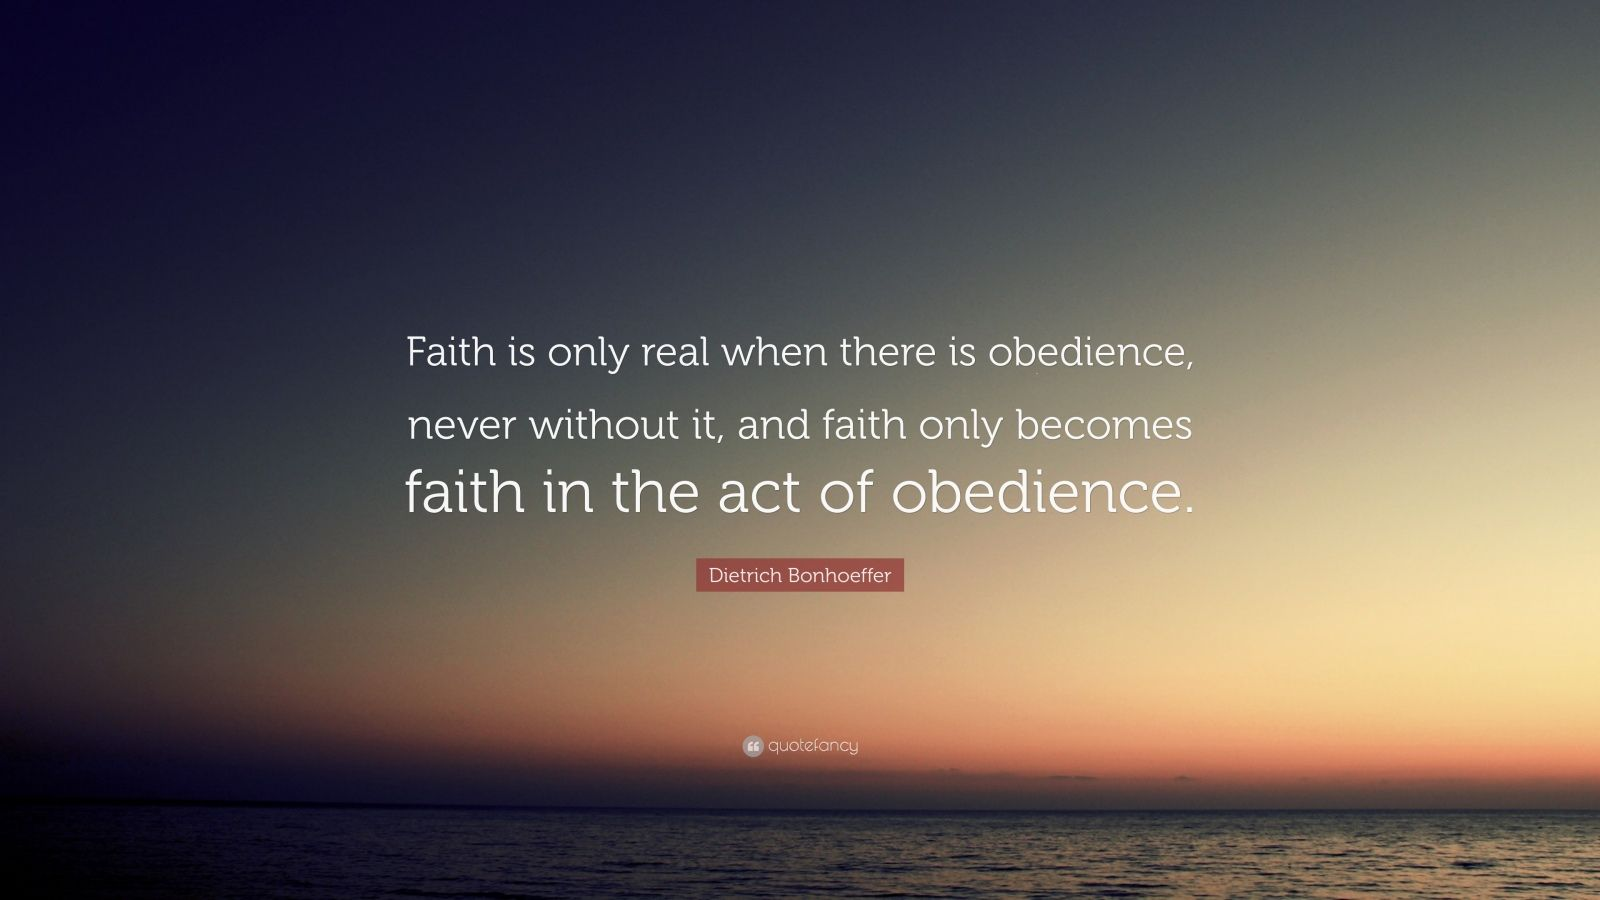 """Dietrich Bonhoeffer Quote: """"Faith is only real when there is obedience, never without it, and faith only becomes faith in the act of obedience."""""""